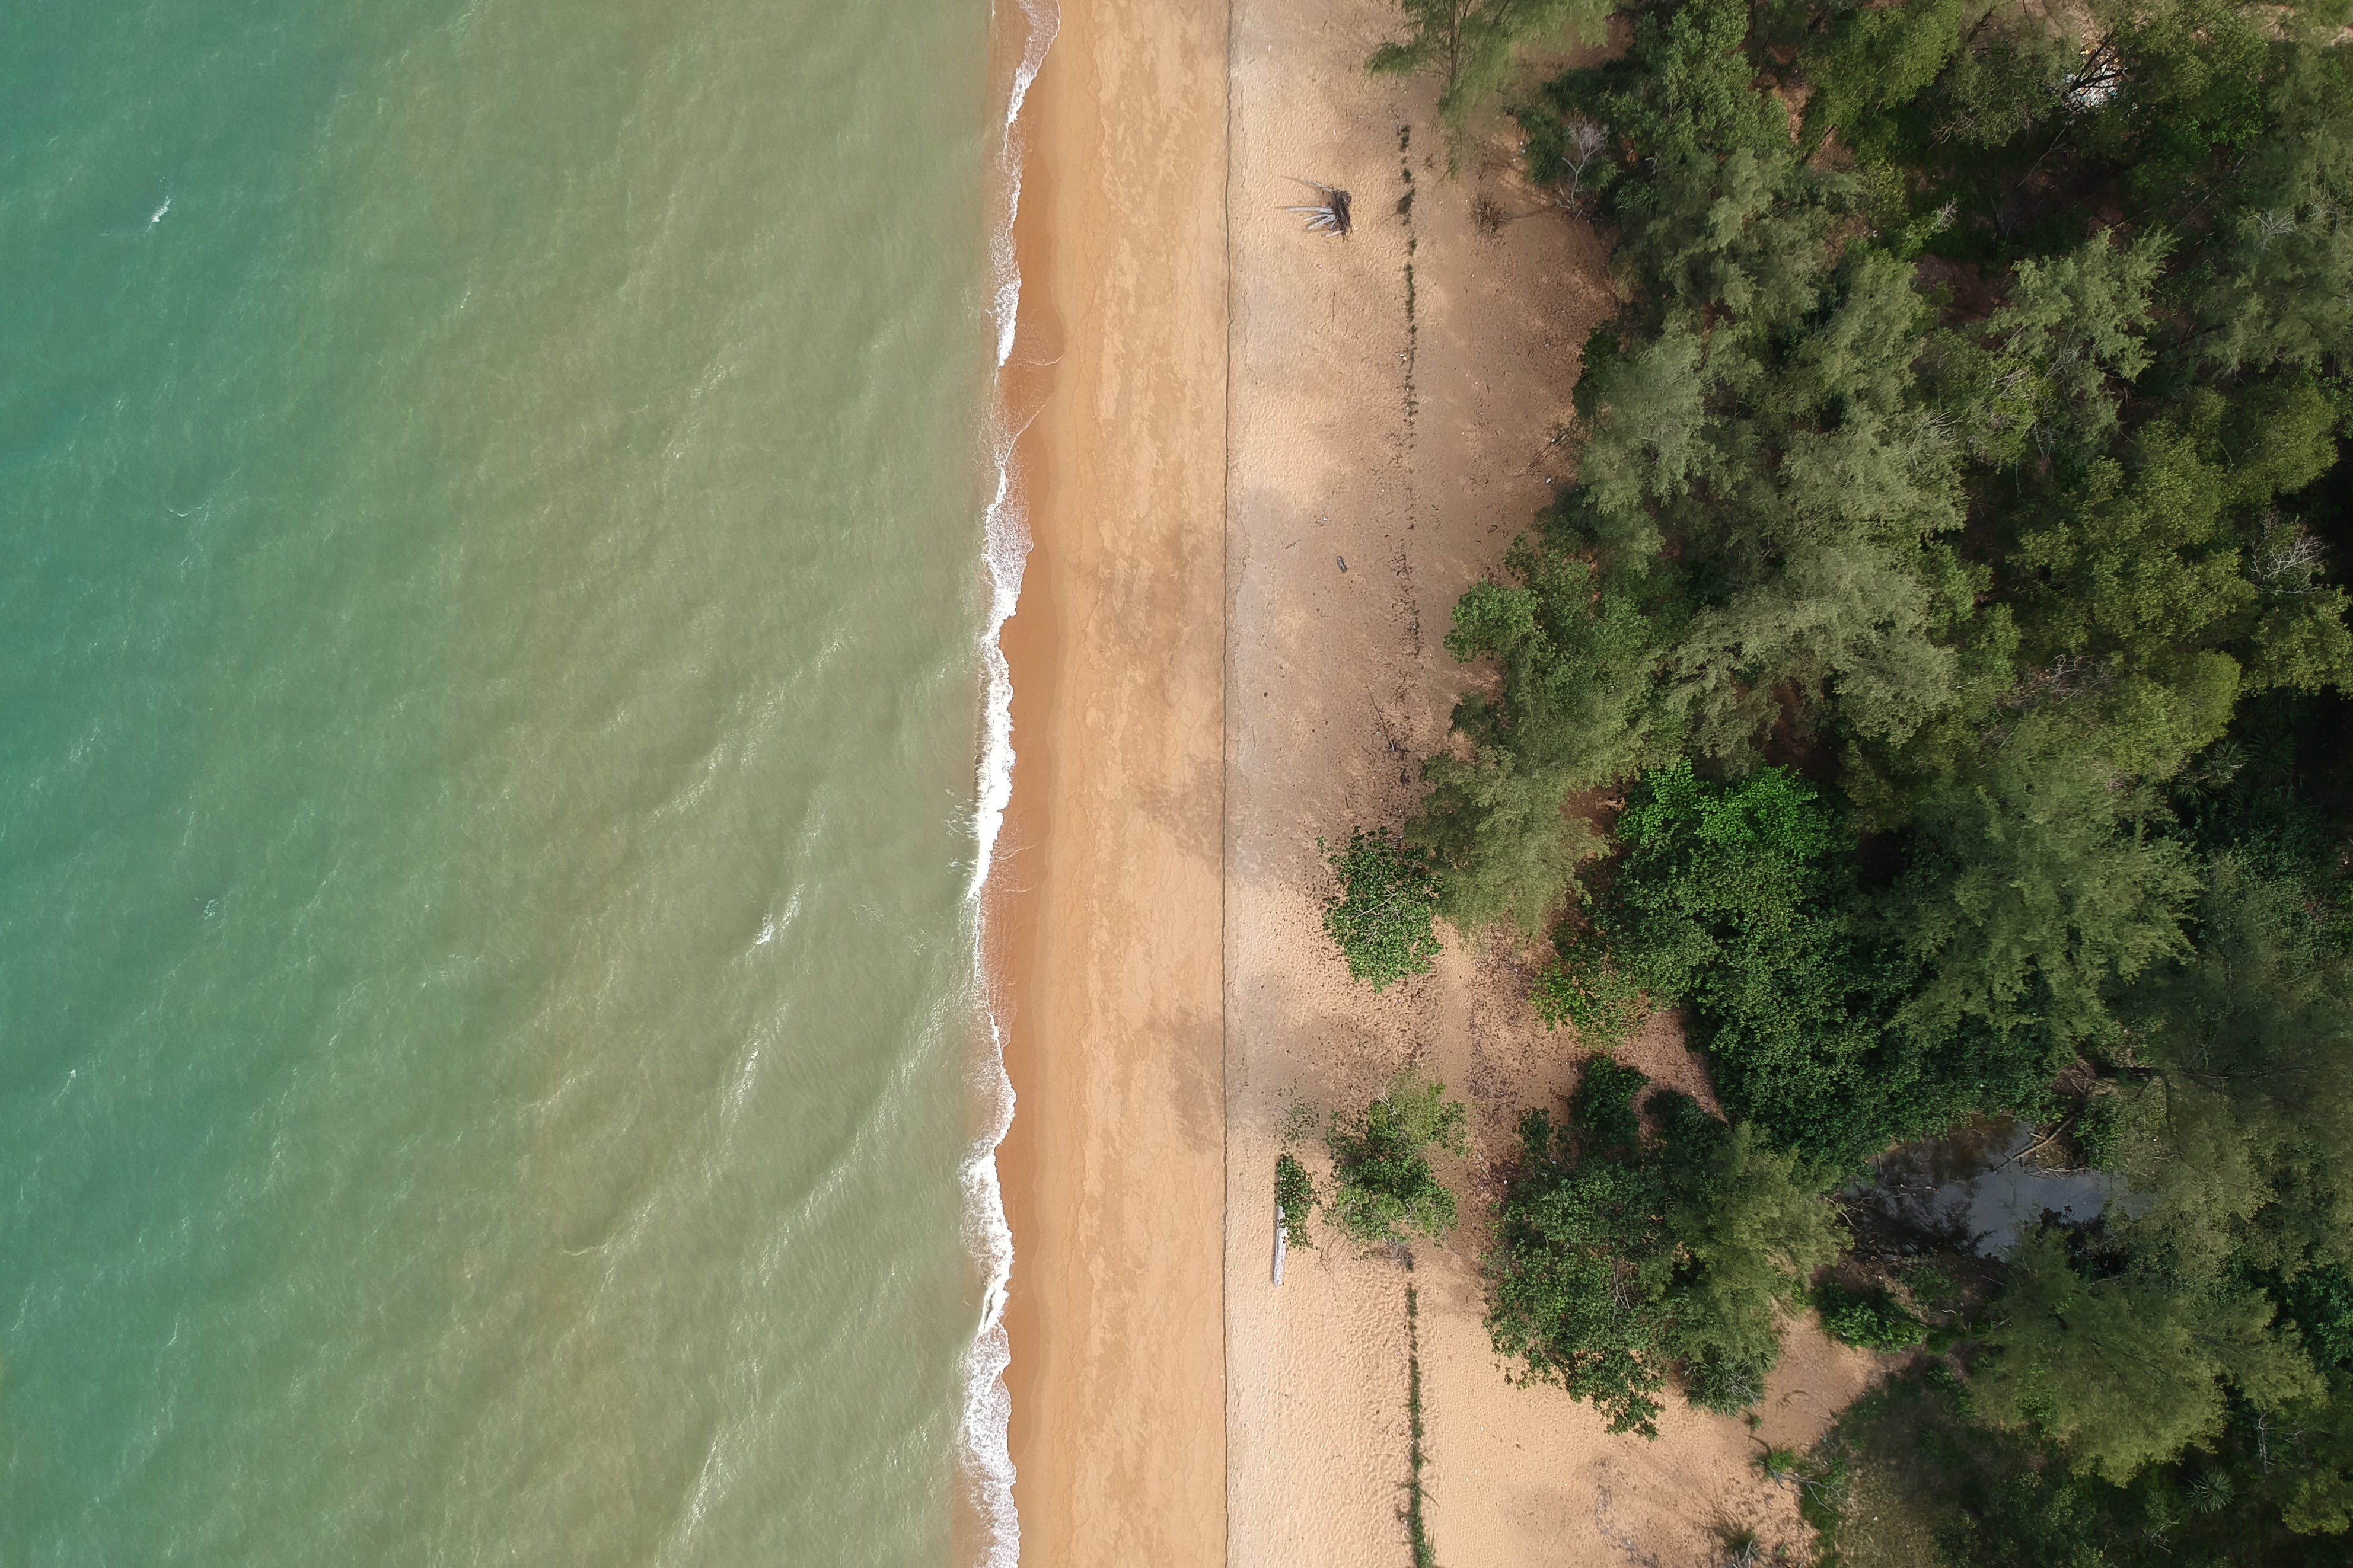 Aerial Photo of Trees on Beach